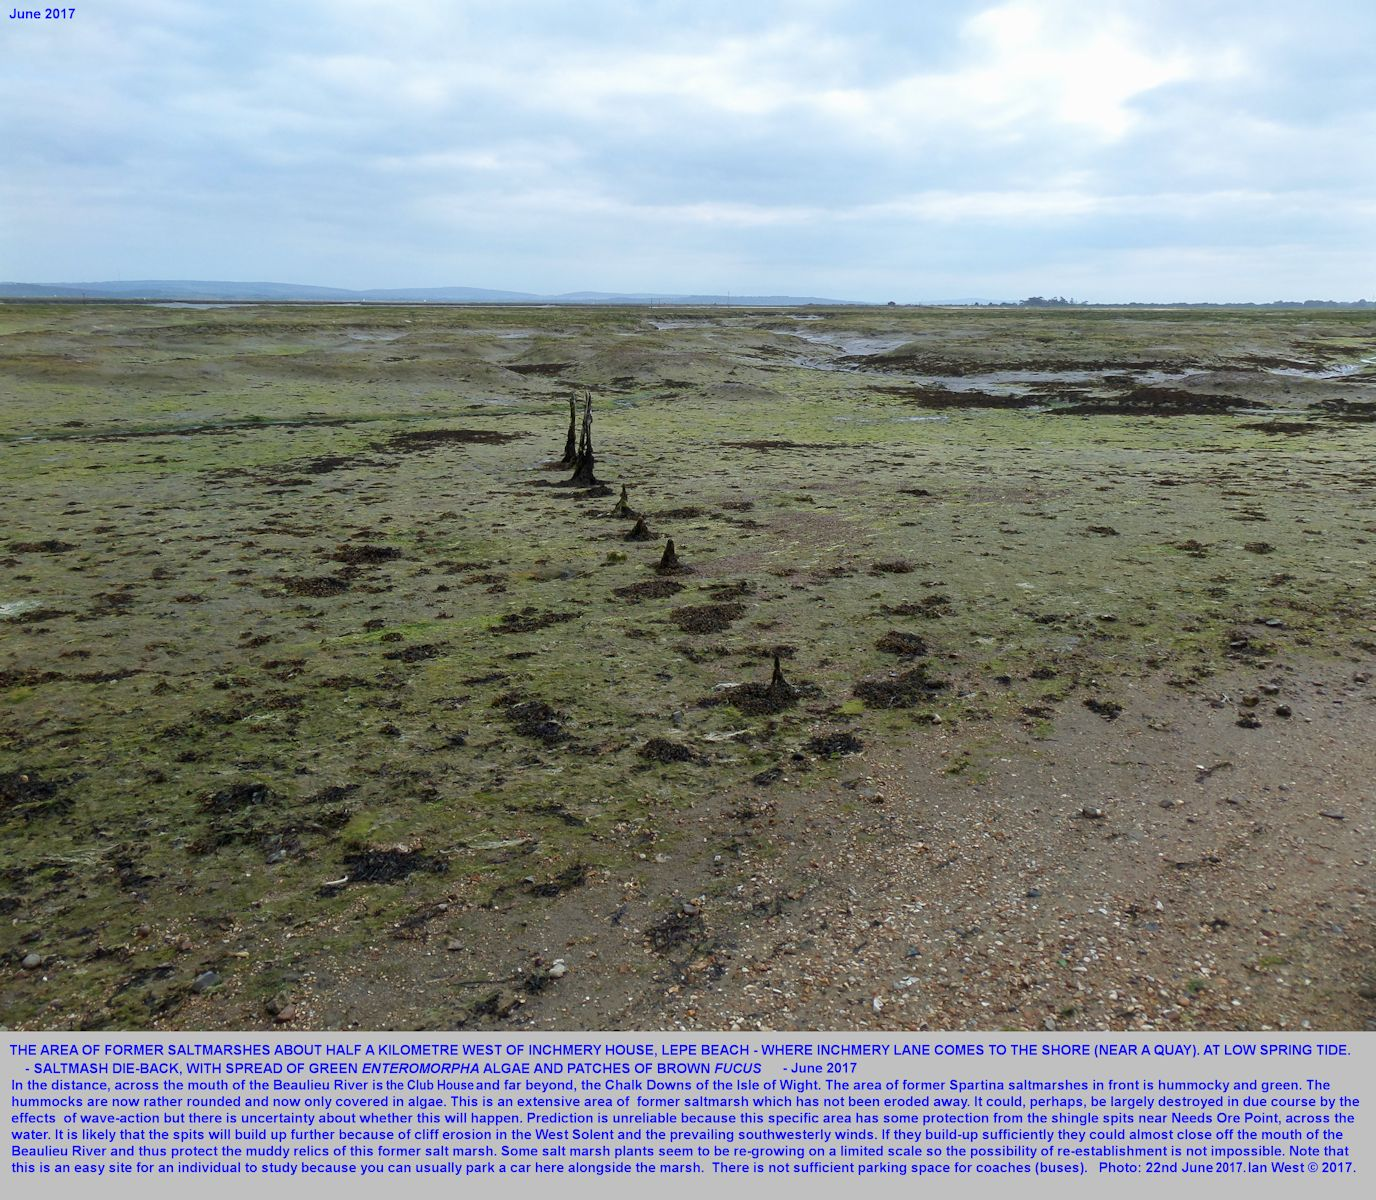 The area of former saltmarshes at the shore, half a kilometre west of Inchmery House, near Lepe Beach, Beaulieu River estuary, Hampshire, seen on the 22nd June 2017, after die-back, degradation and erosion